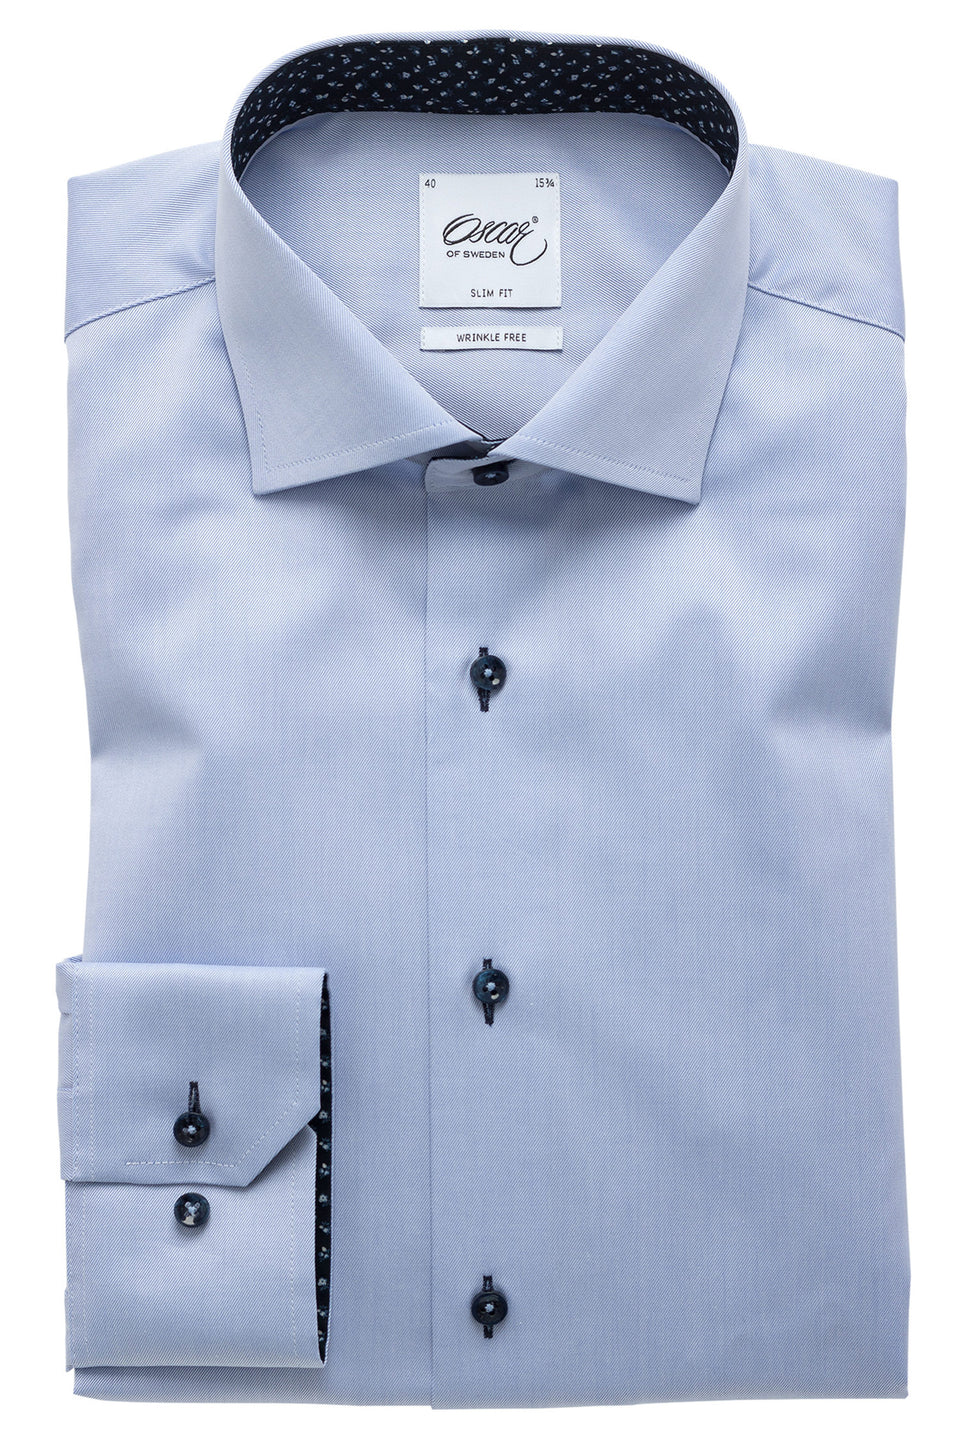 Lightblue slim shirt with navy details